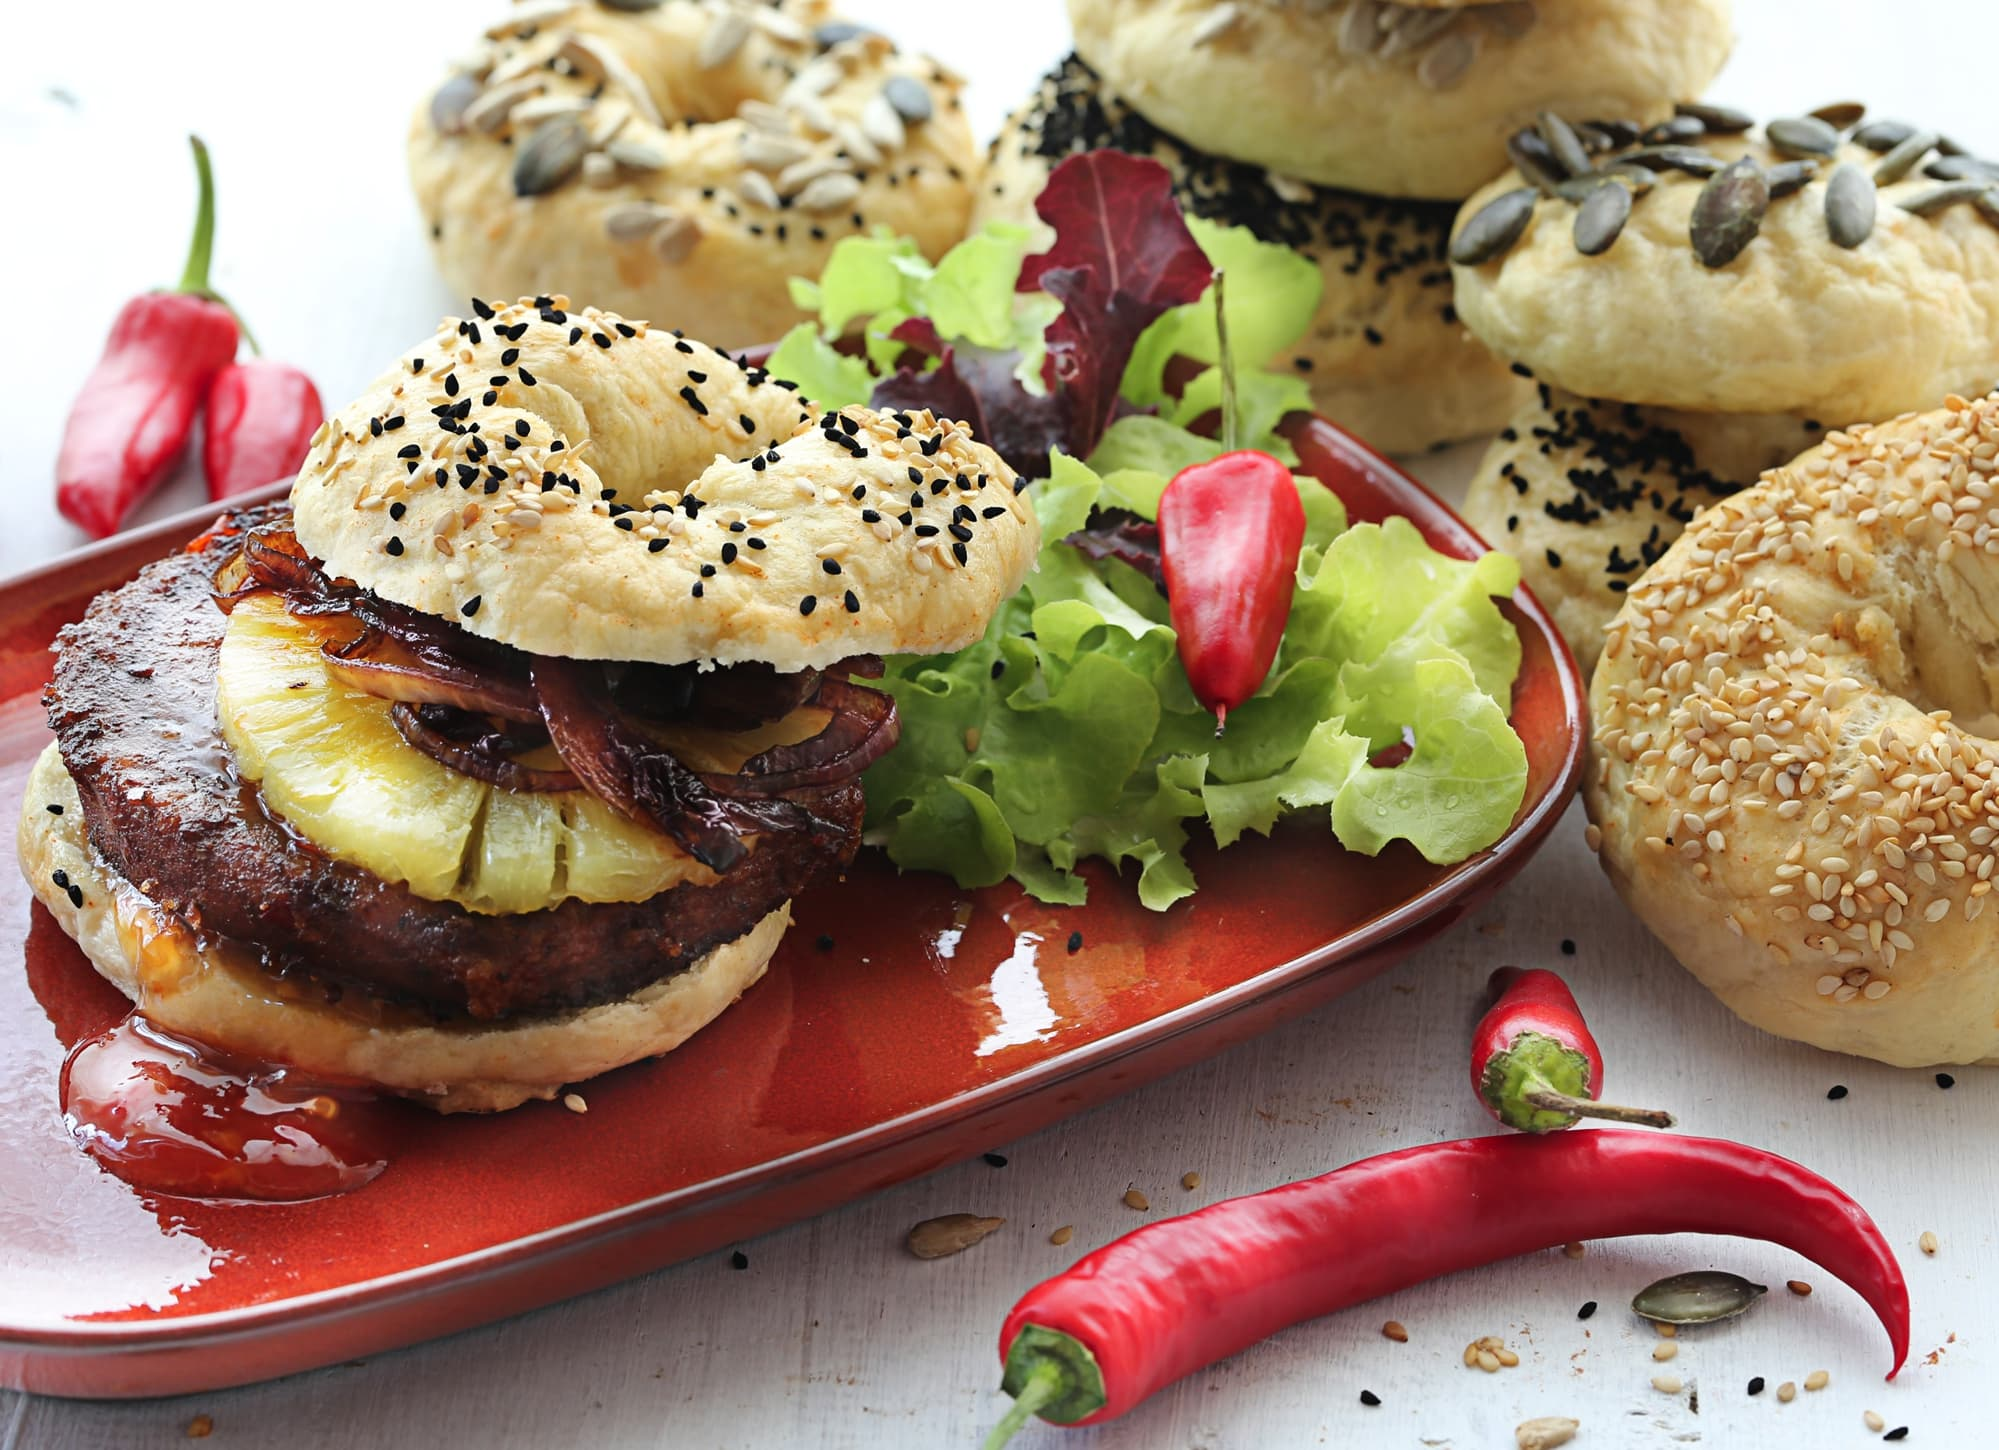 HAWAII-BAGEL MIT ZWIEBELCONFIT